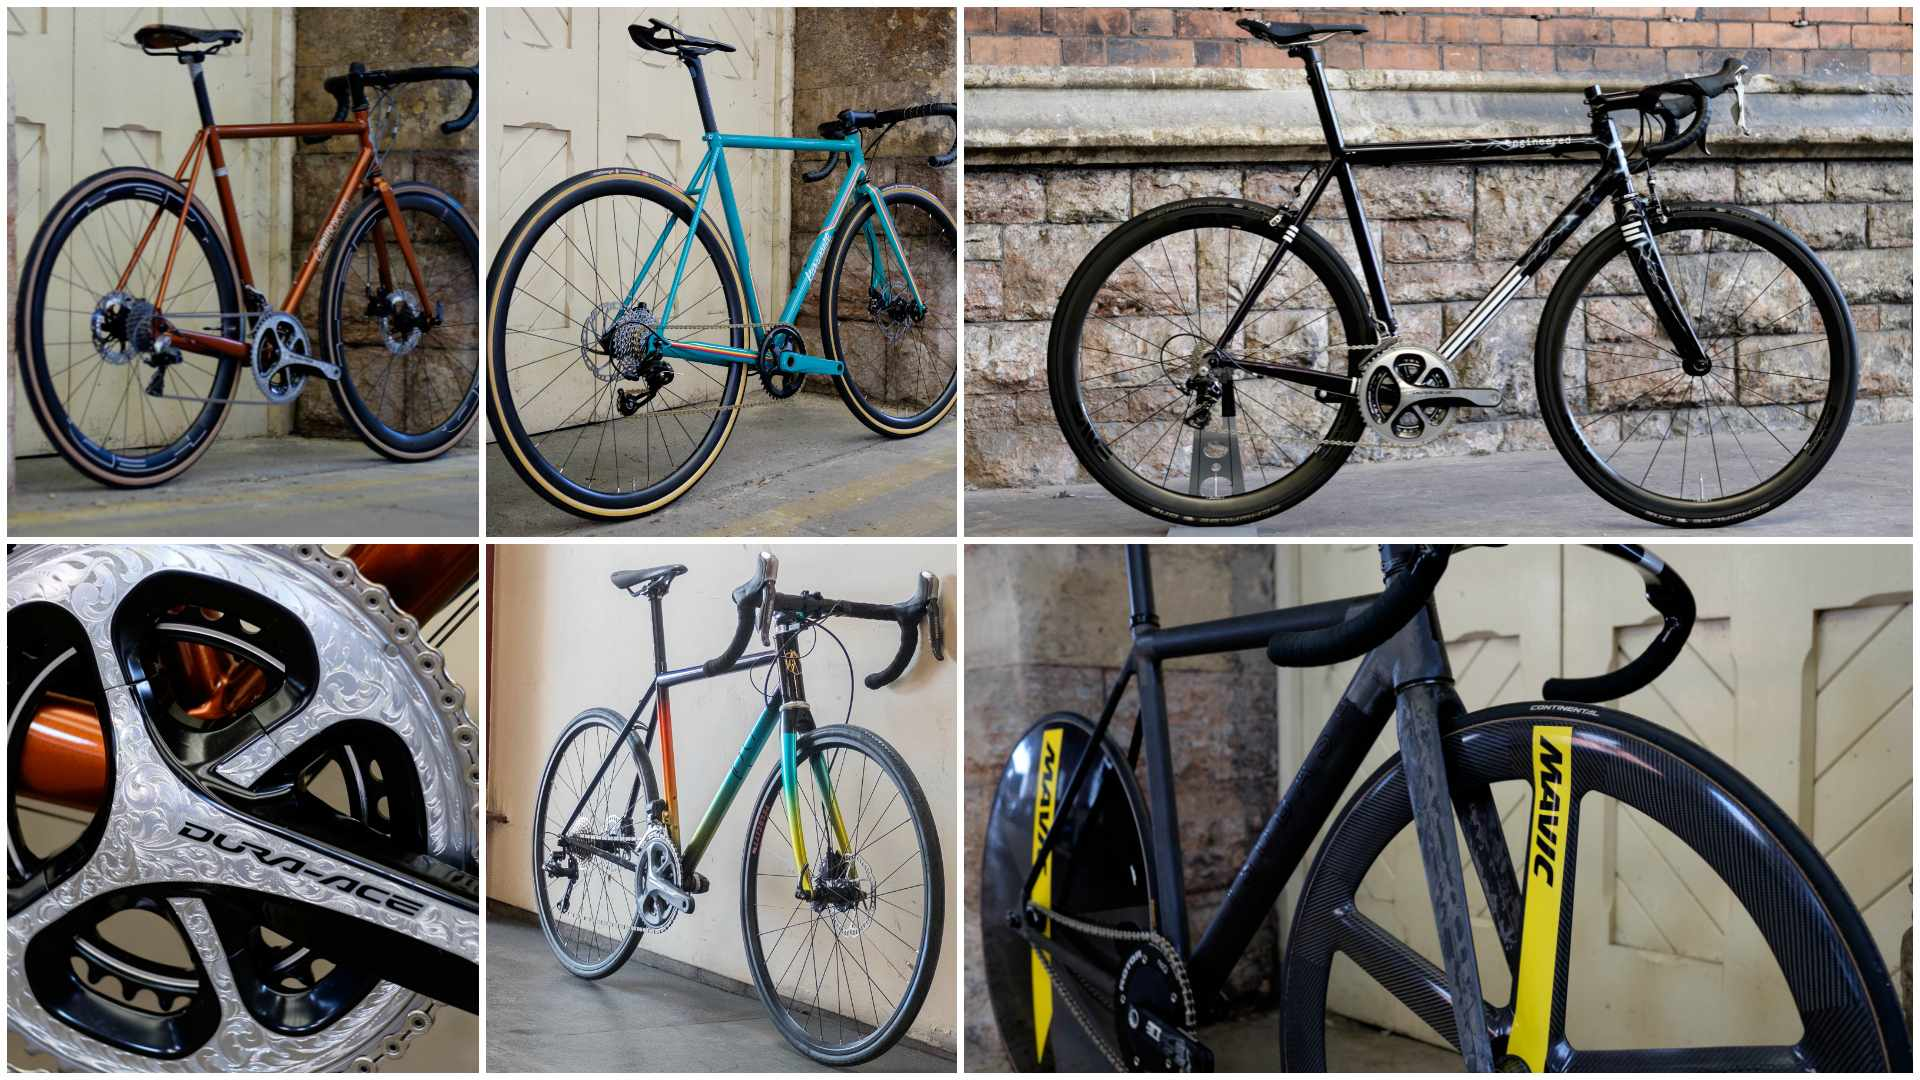 Check out our 11 favourite bikes from this year's edition of Bespoked